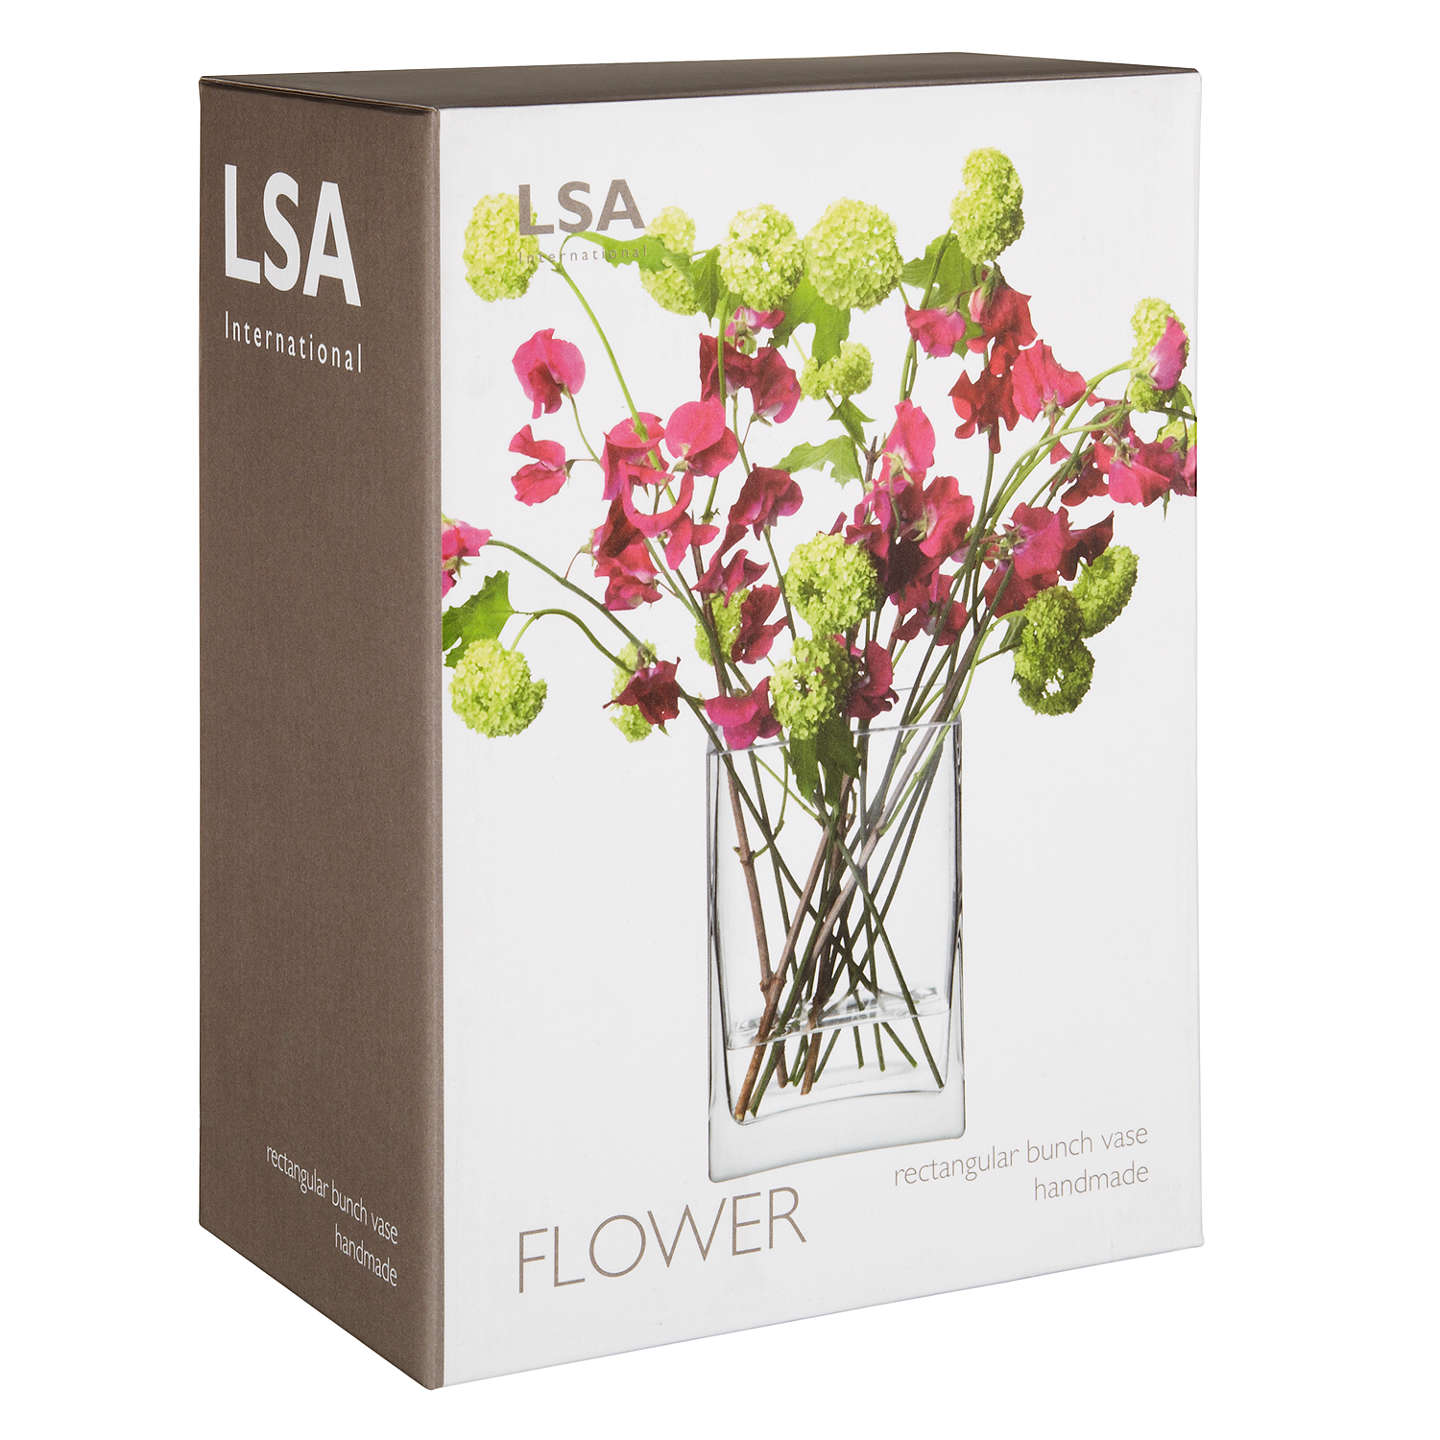 BuyLSA International Flower Rectangular Bunch Vase, Clear, H22cm Online at johnlewis.com